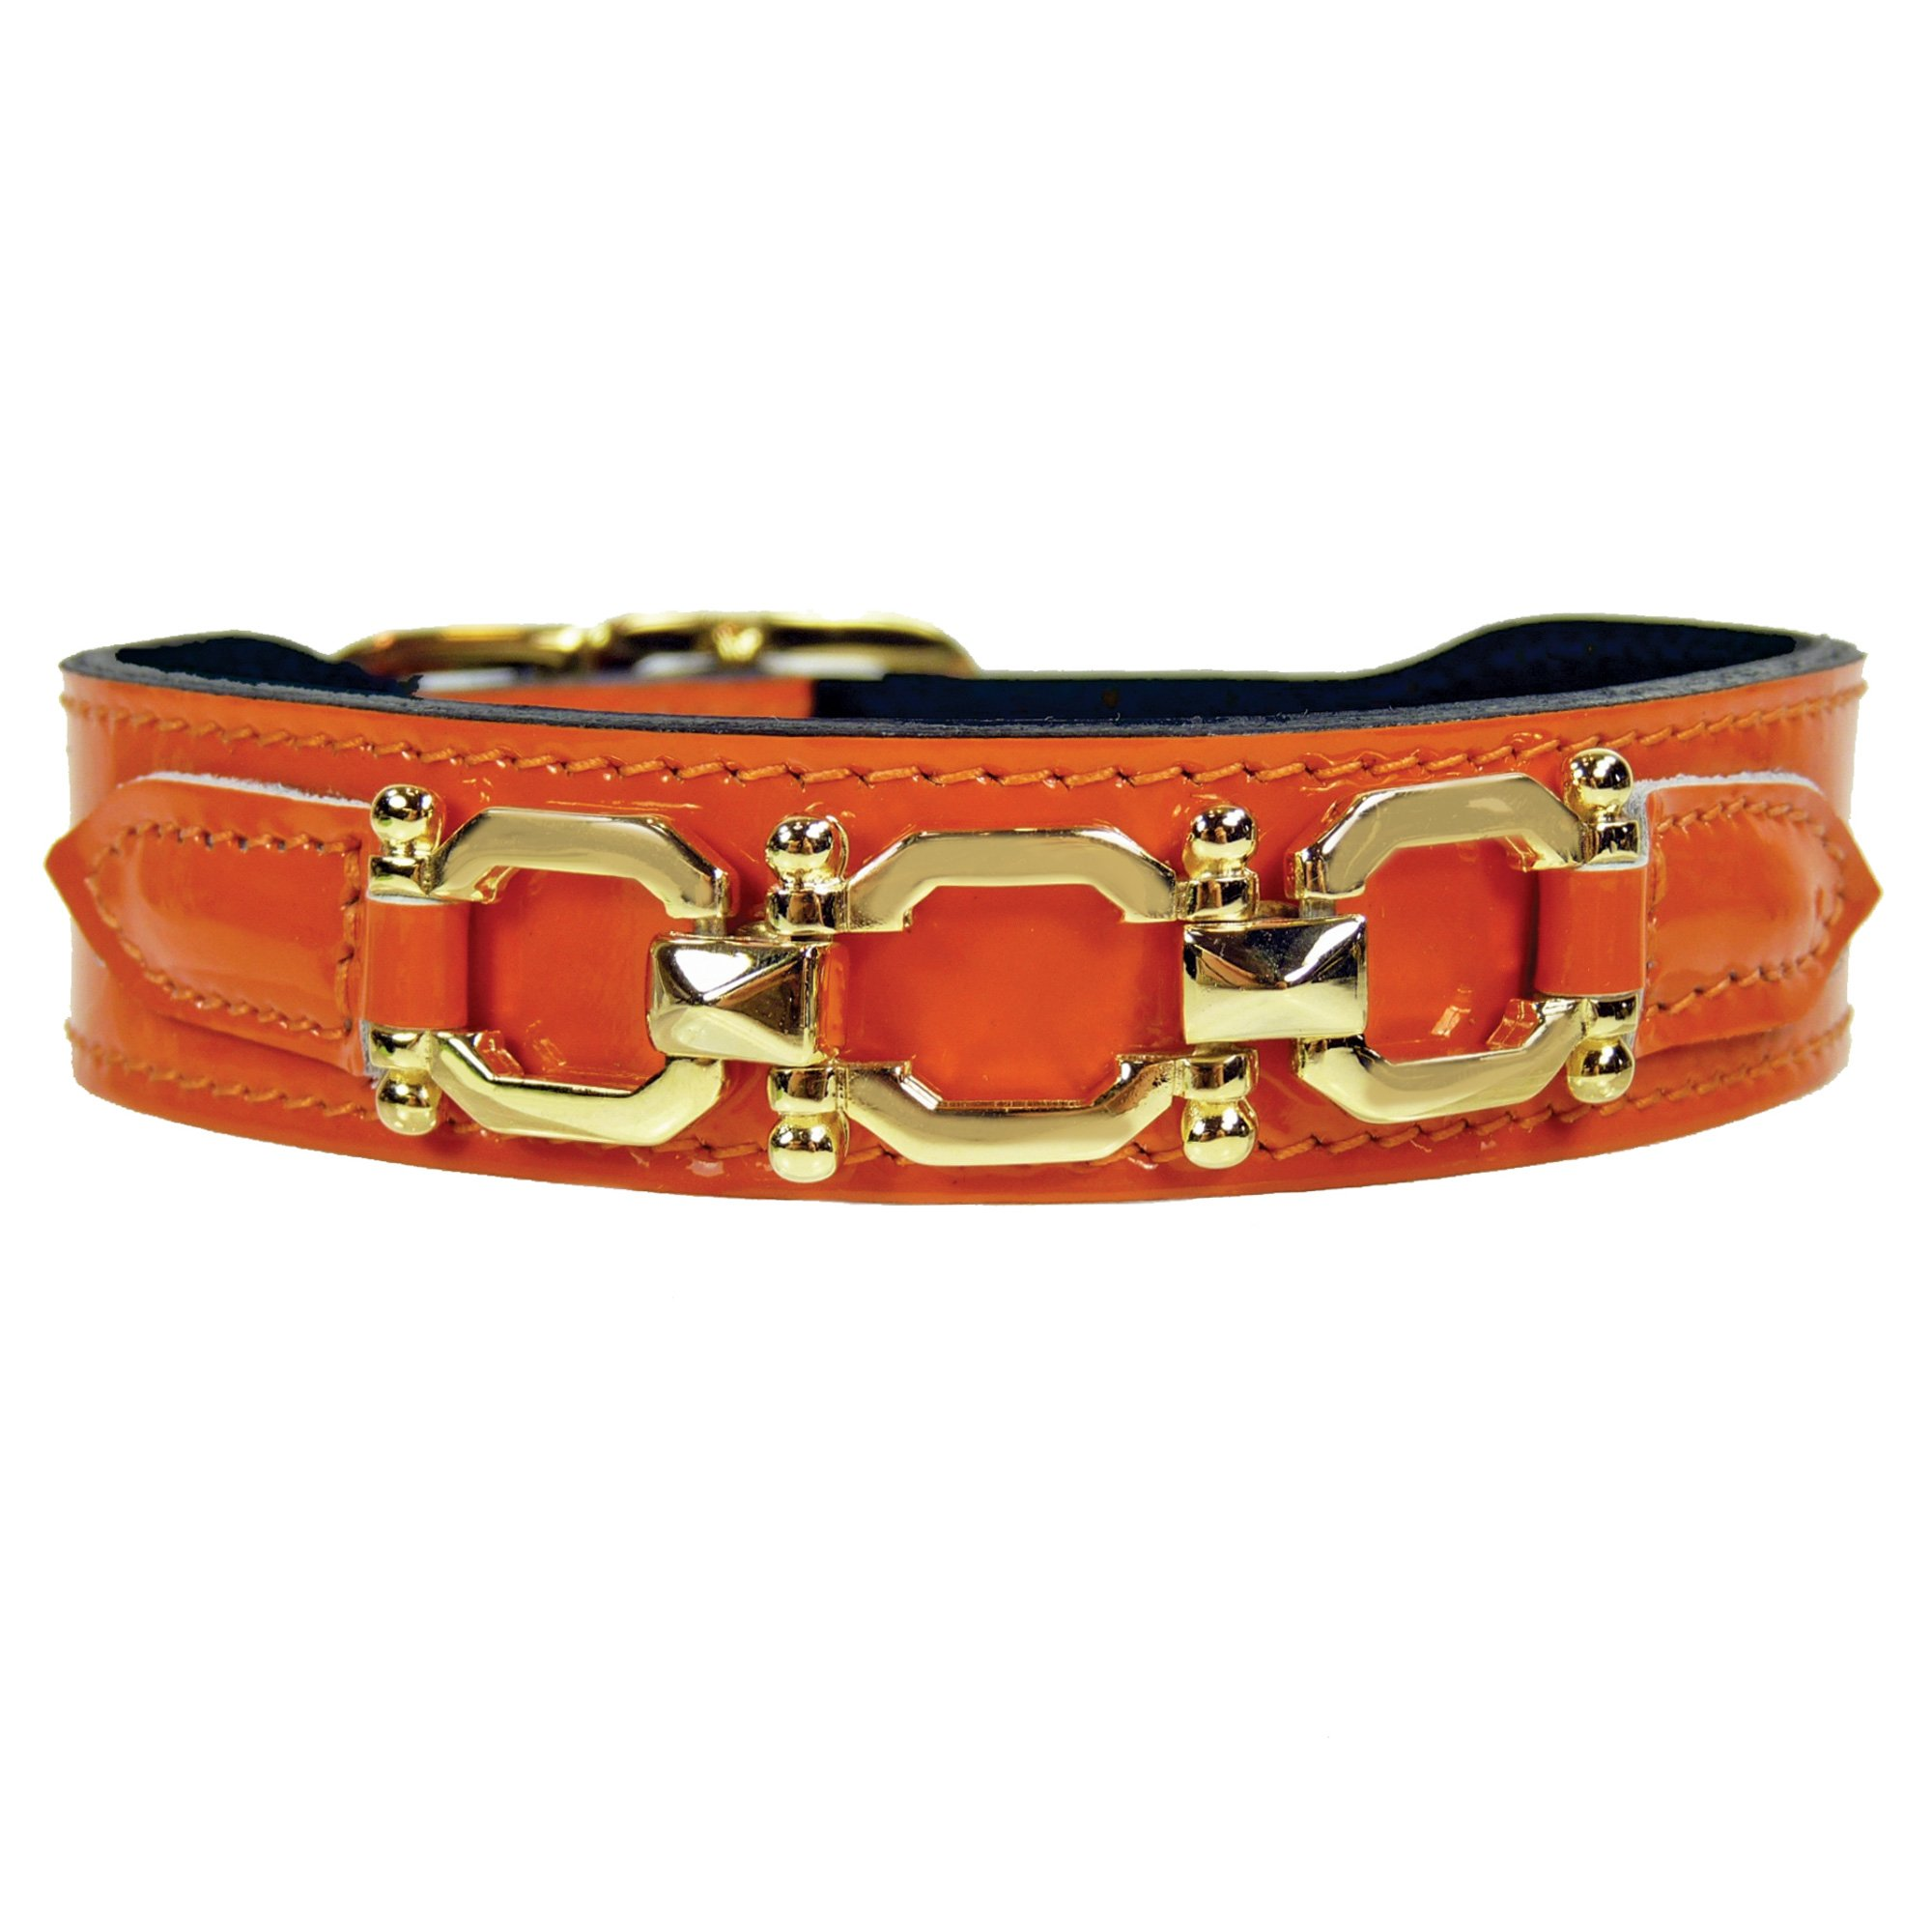 Hartman & Rose Georgia Rose Collection Dog Collar, Orange Patent, 14-16-Inch